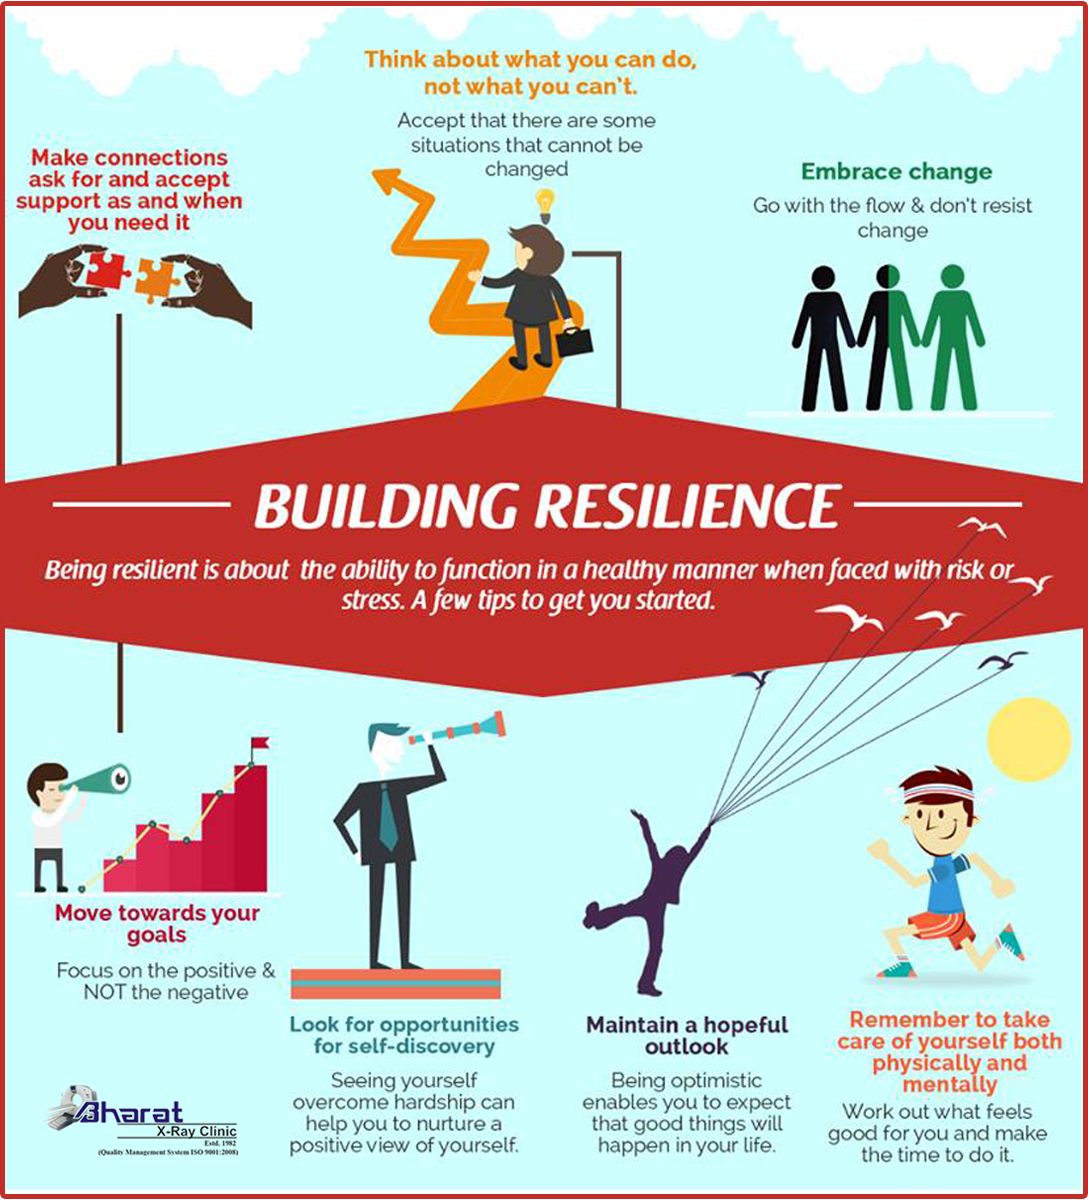 Few tips to help you build mental strength and resilience